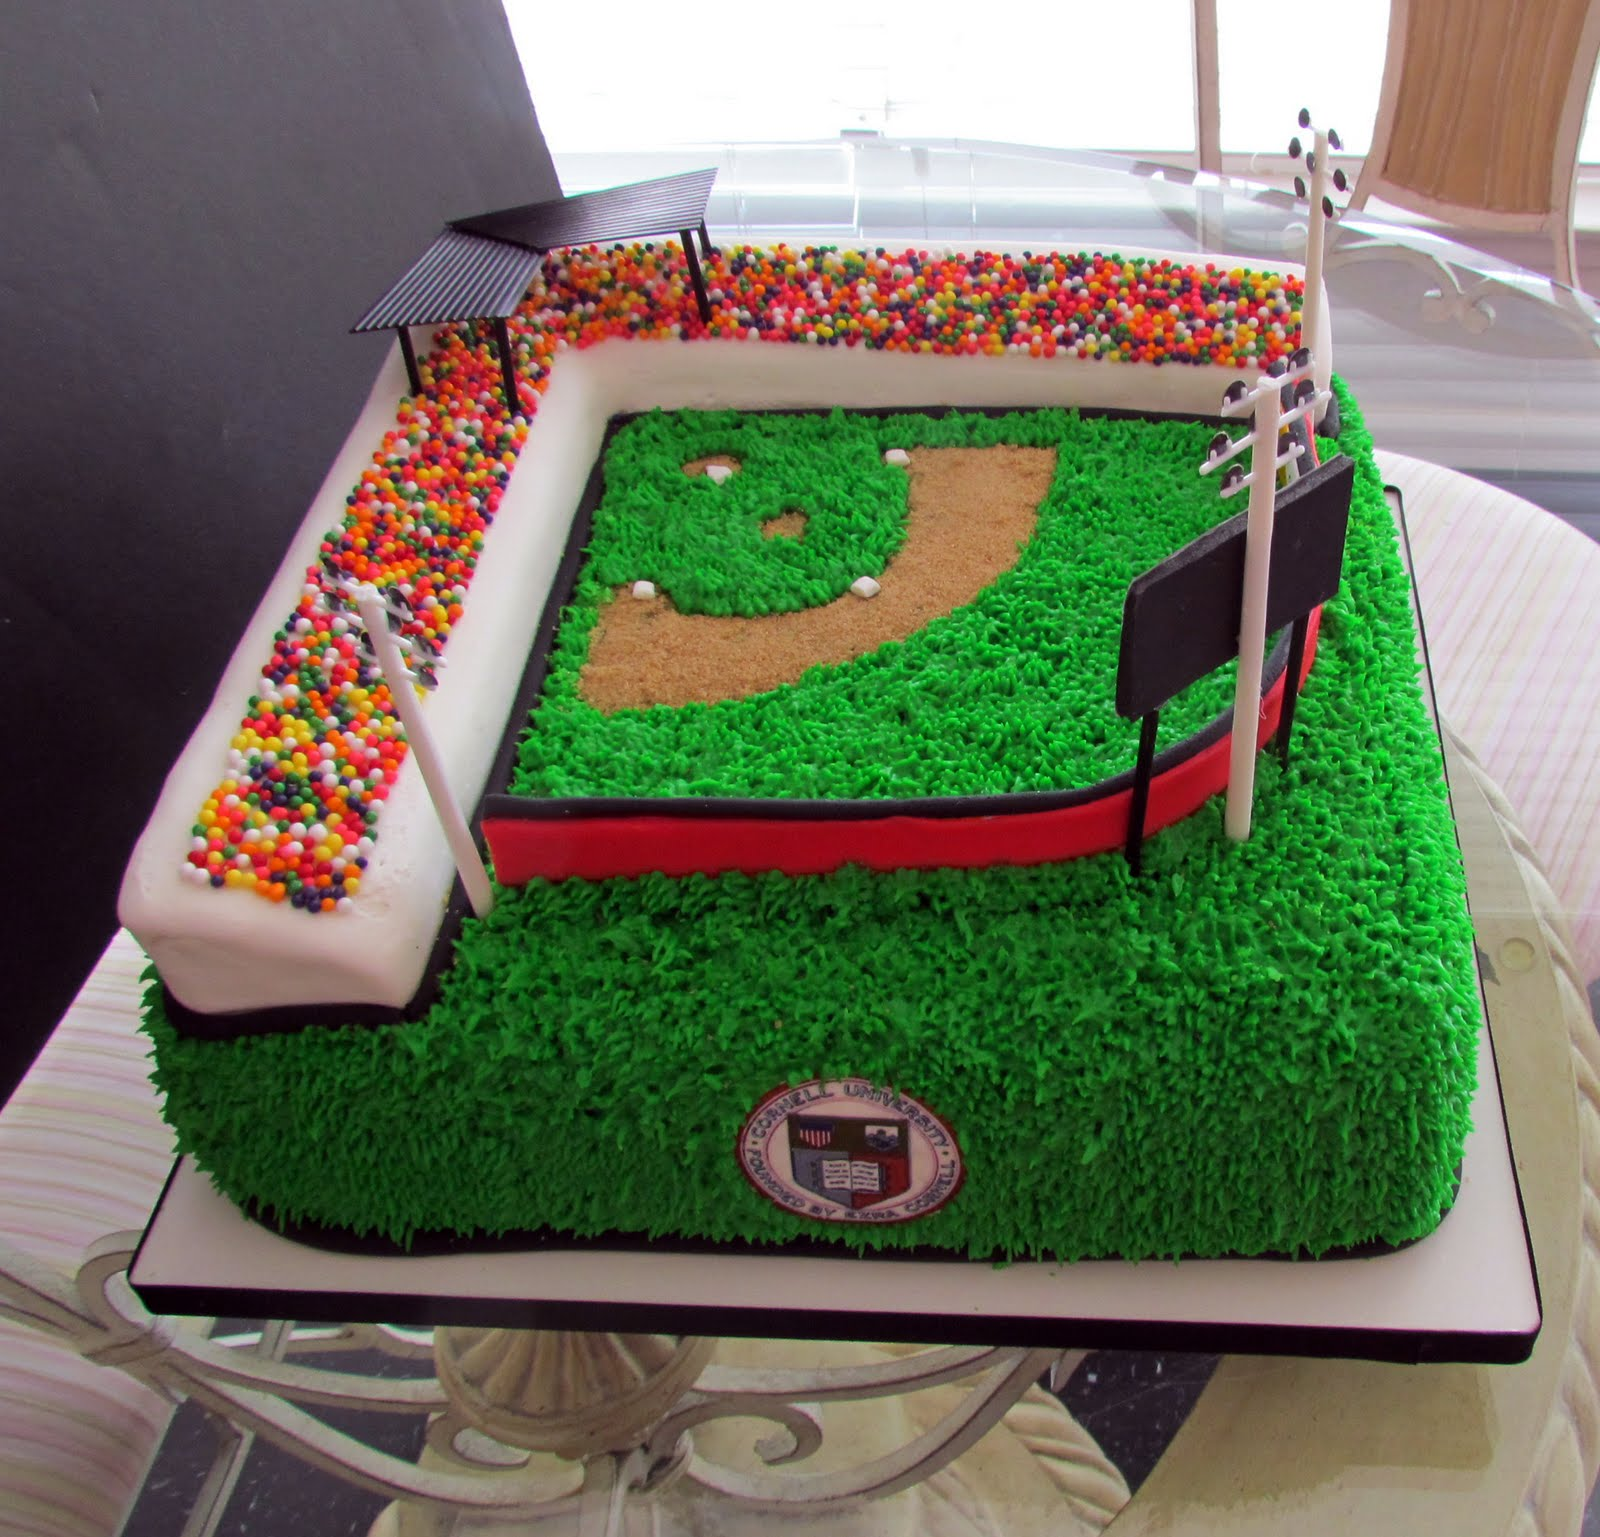 Swell Baseball Field Cakes Decoration Ideas Little Birthday Cakes Personalised Birthday Cards Paralily Jamesorg